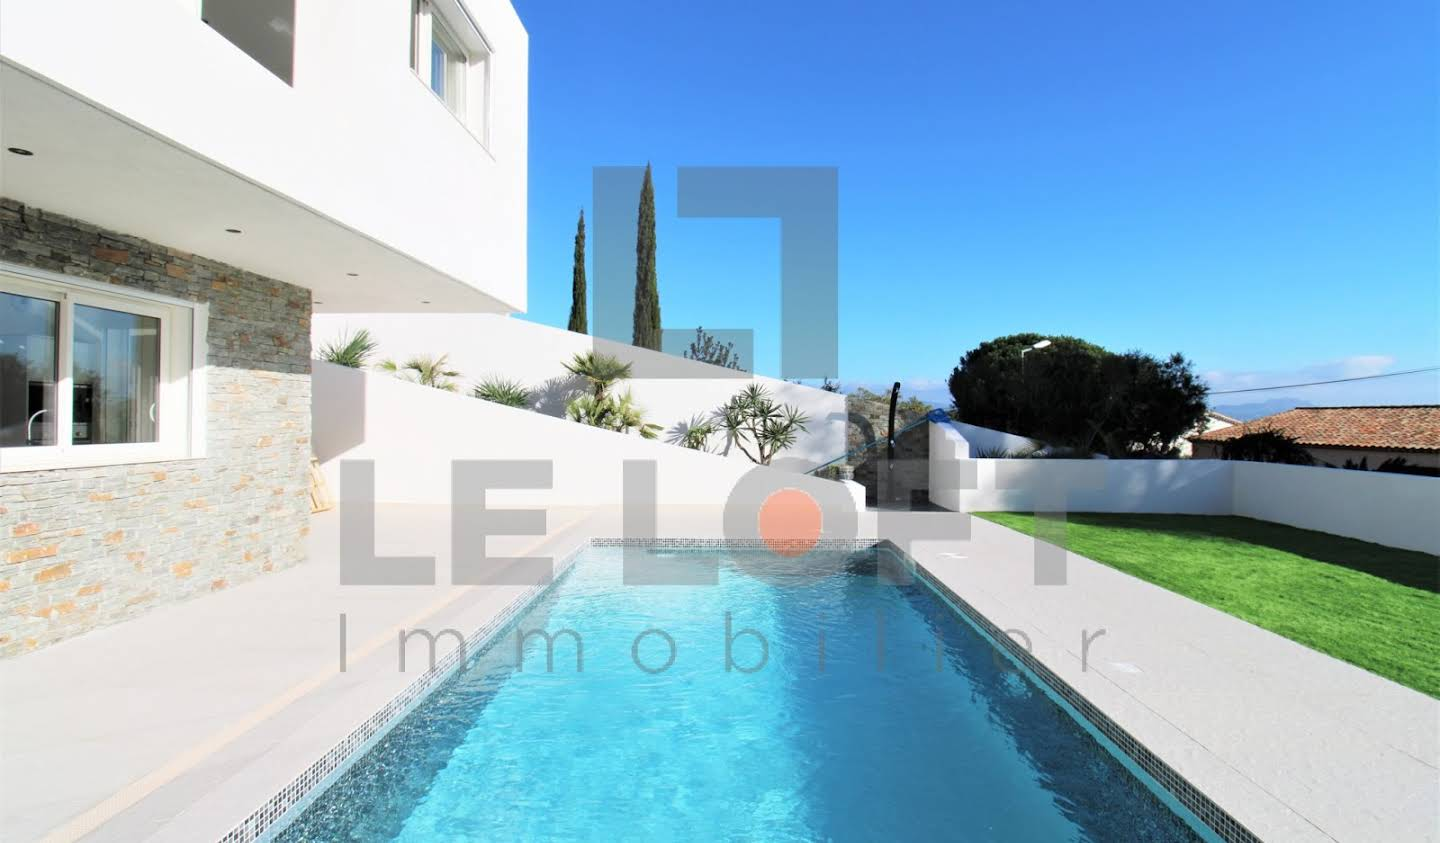 House with pool and terrace Saint aygulf